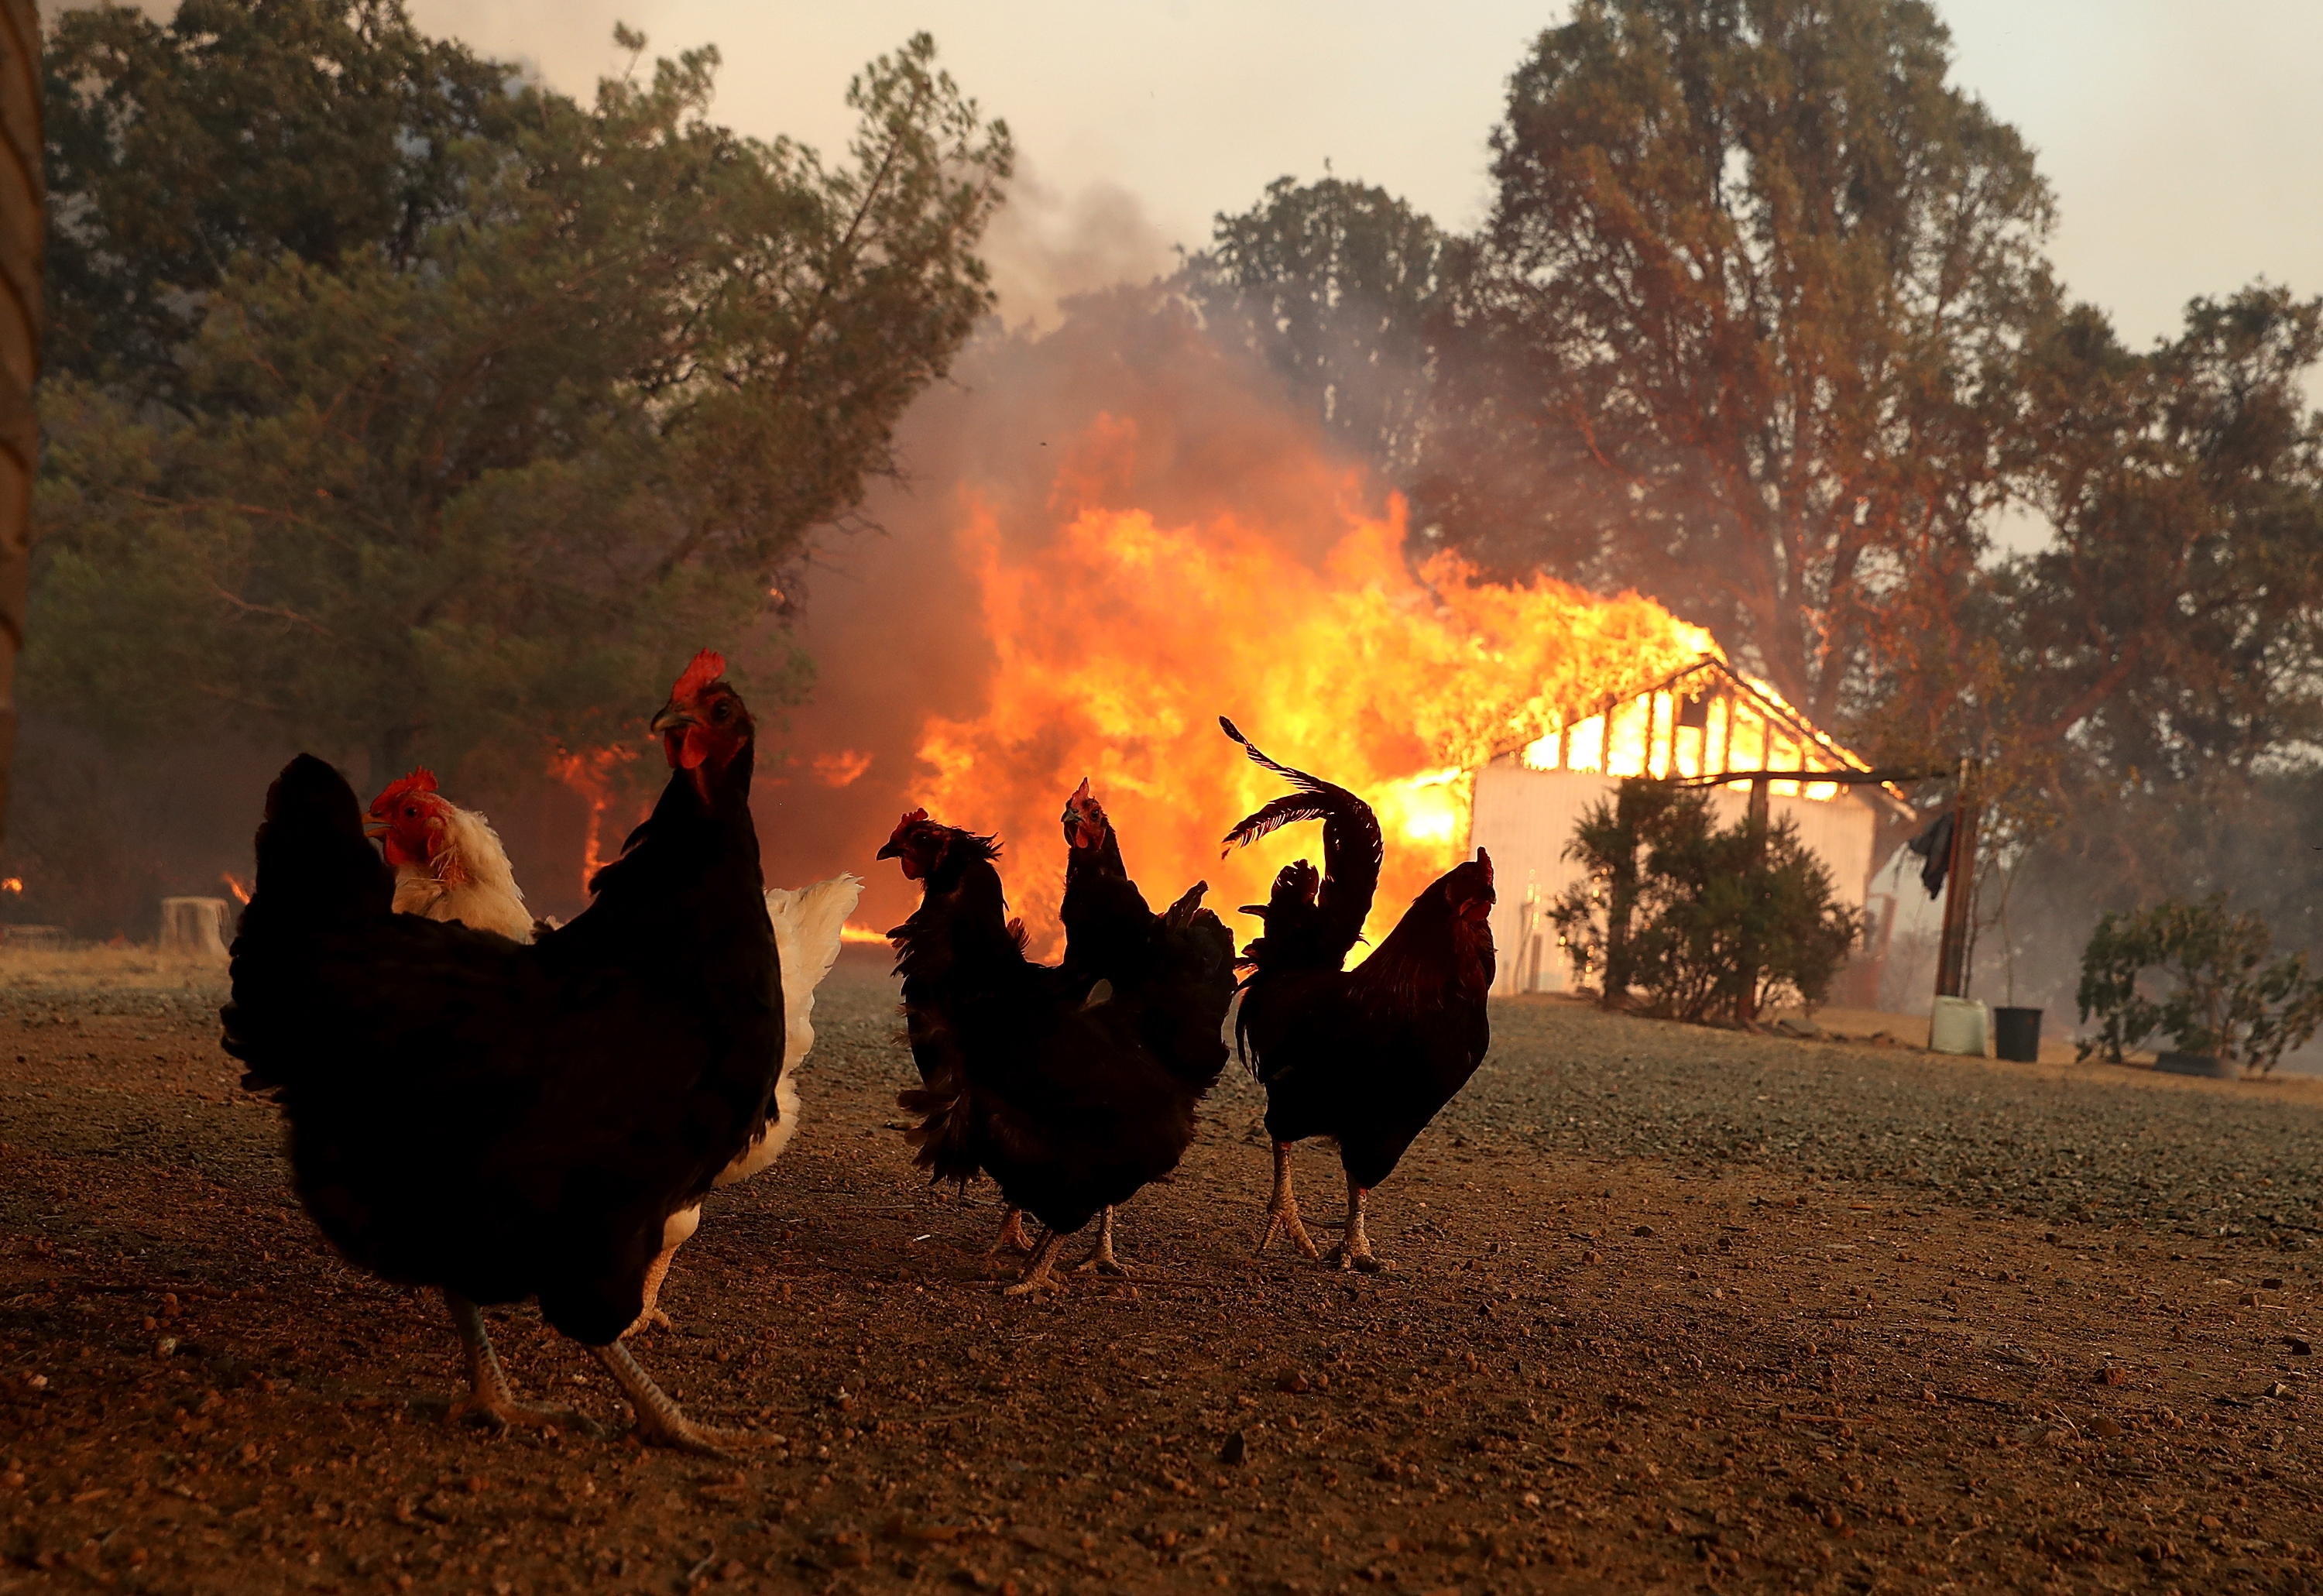 "<div class=""meta image-caption""><div class=""origin-logo origin-image none""><span>none</span></div><span class=""caption-text"">Chickens stand near a burning home as the River Fire moves through the area on July 31, 2018 in Lakeport, California. (Justin Sullivan/Getty Images)</span></div>"